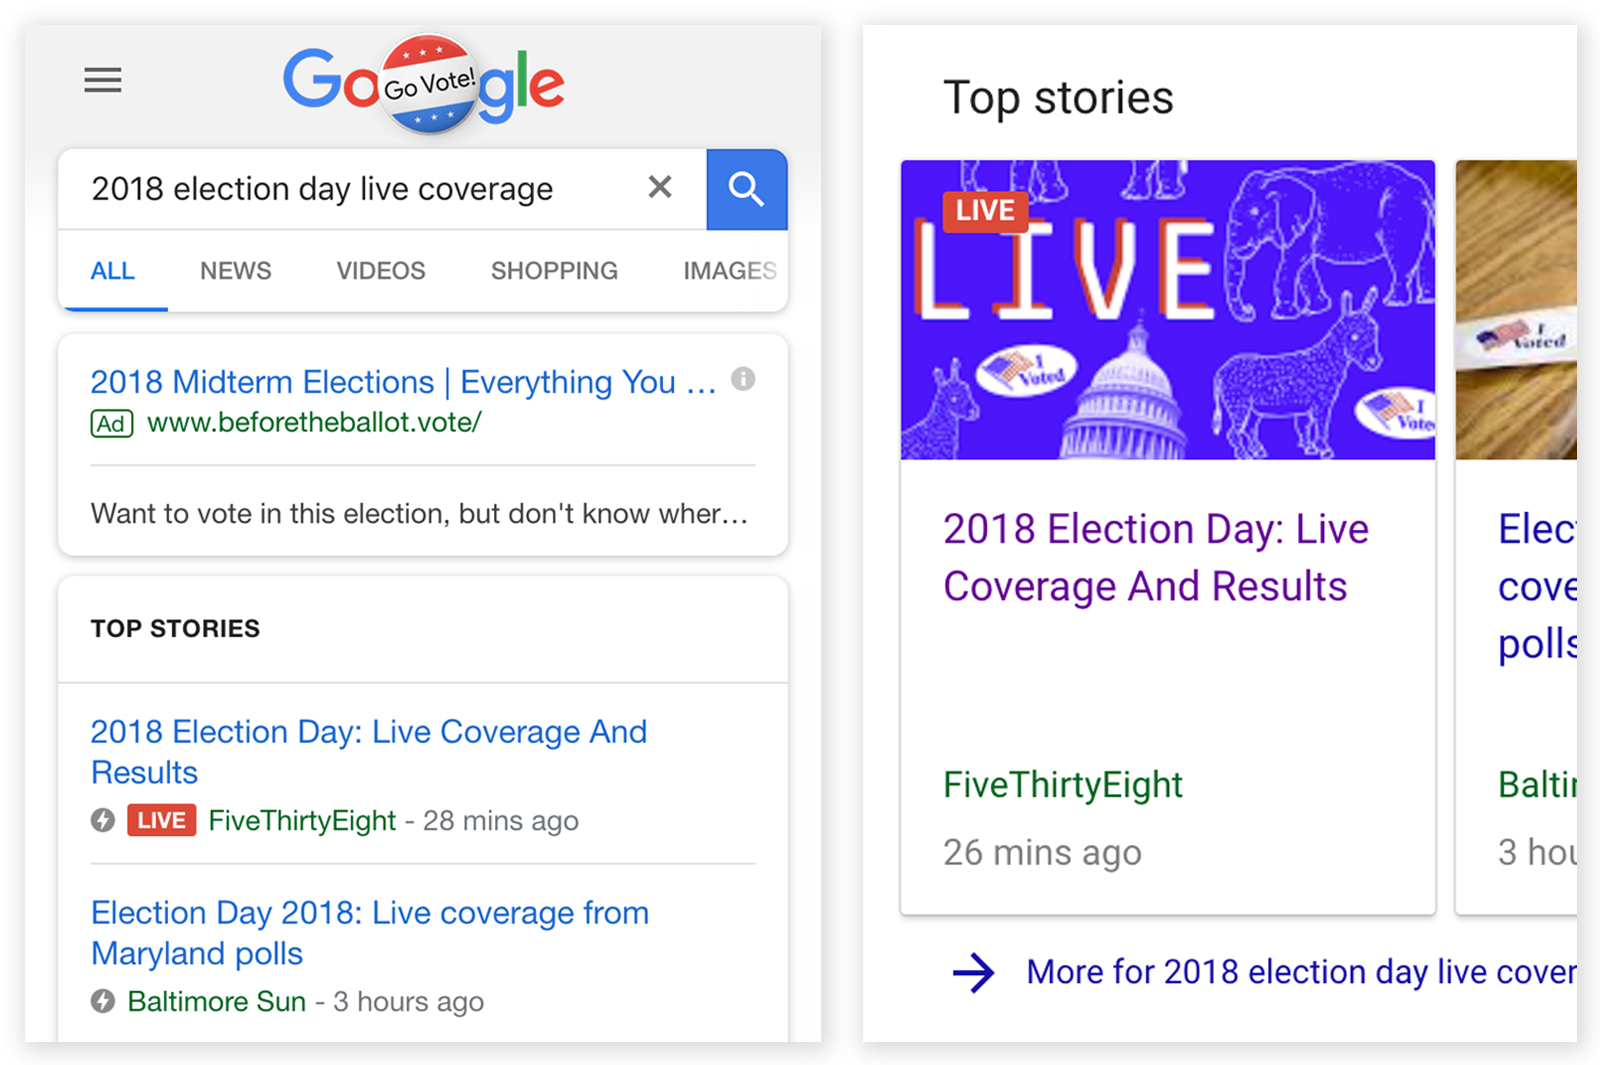 Live Event Coverage By FiveThirtyEight